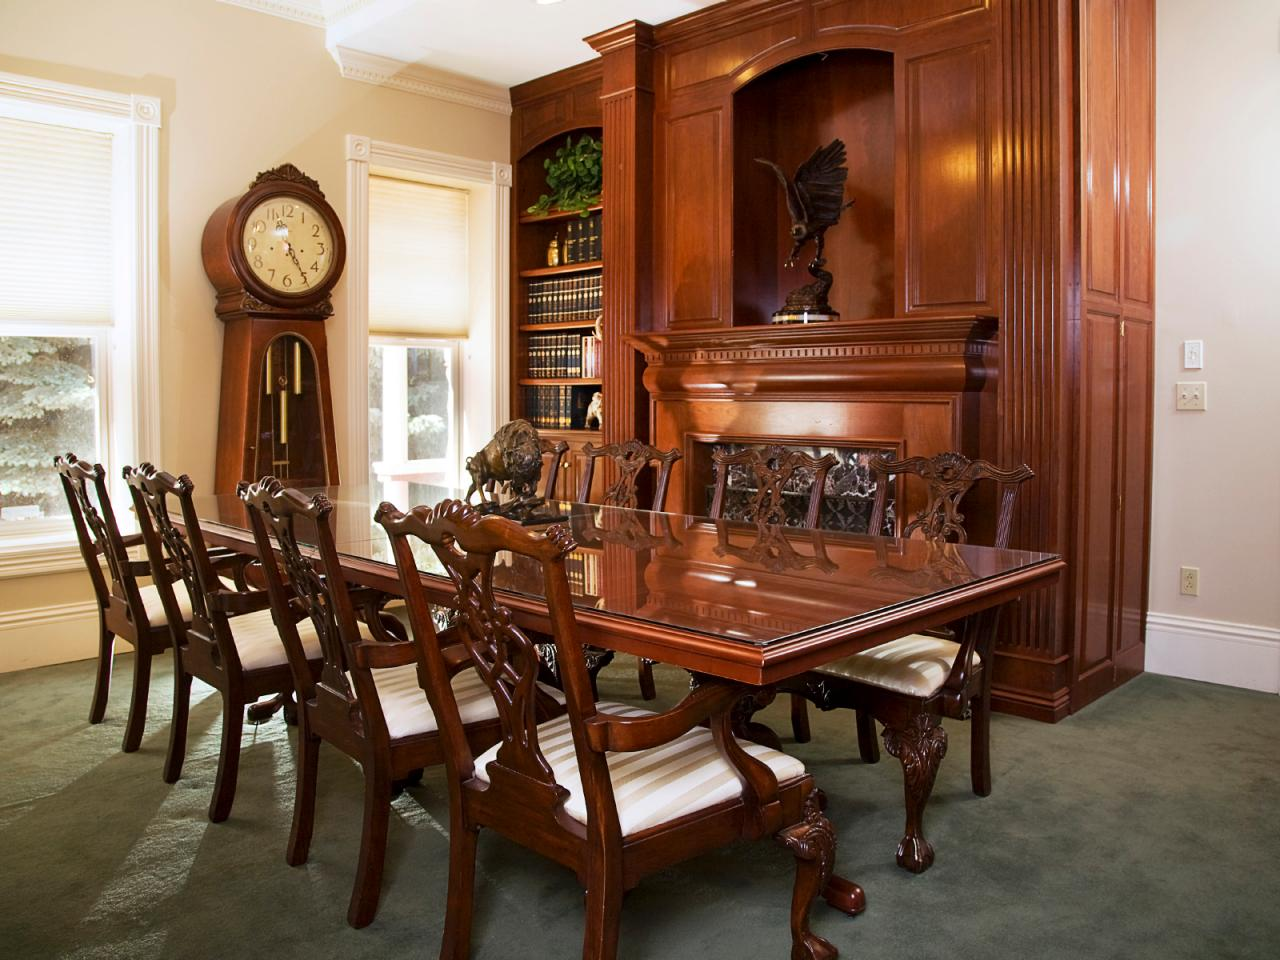 Victorian Dining Room With Rich Wood Furnishings